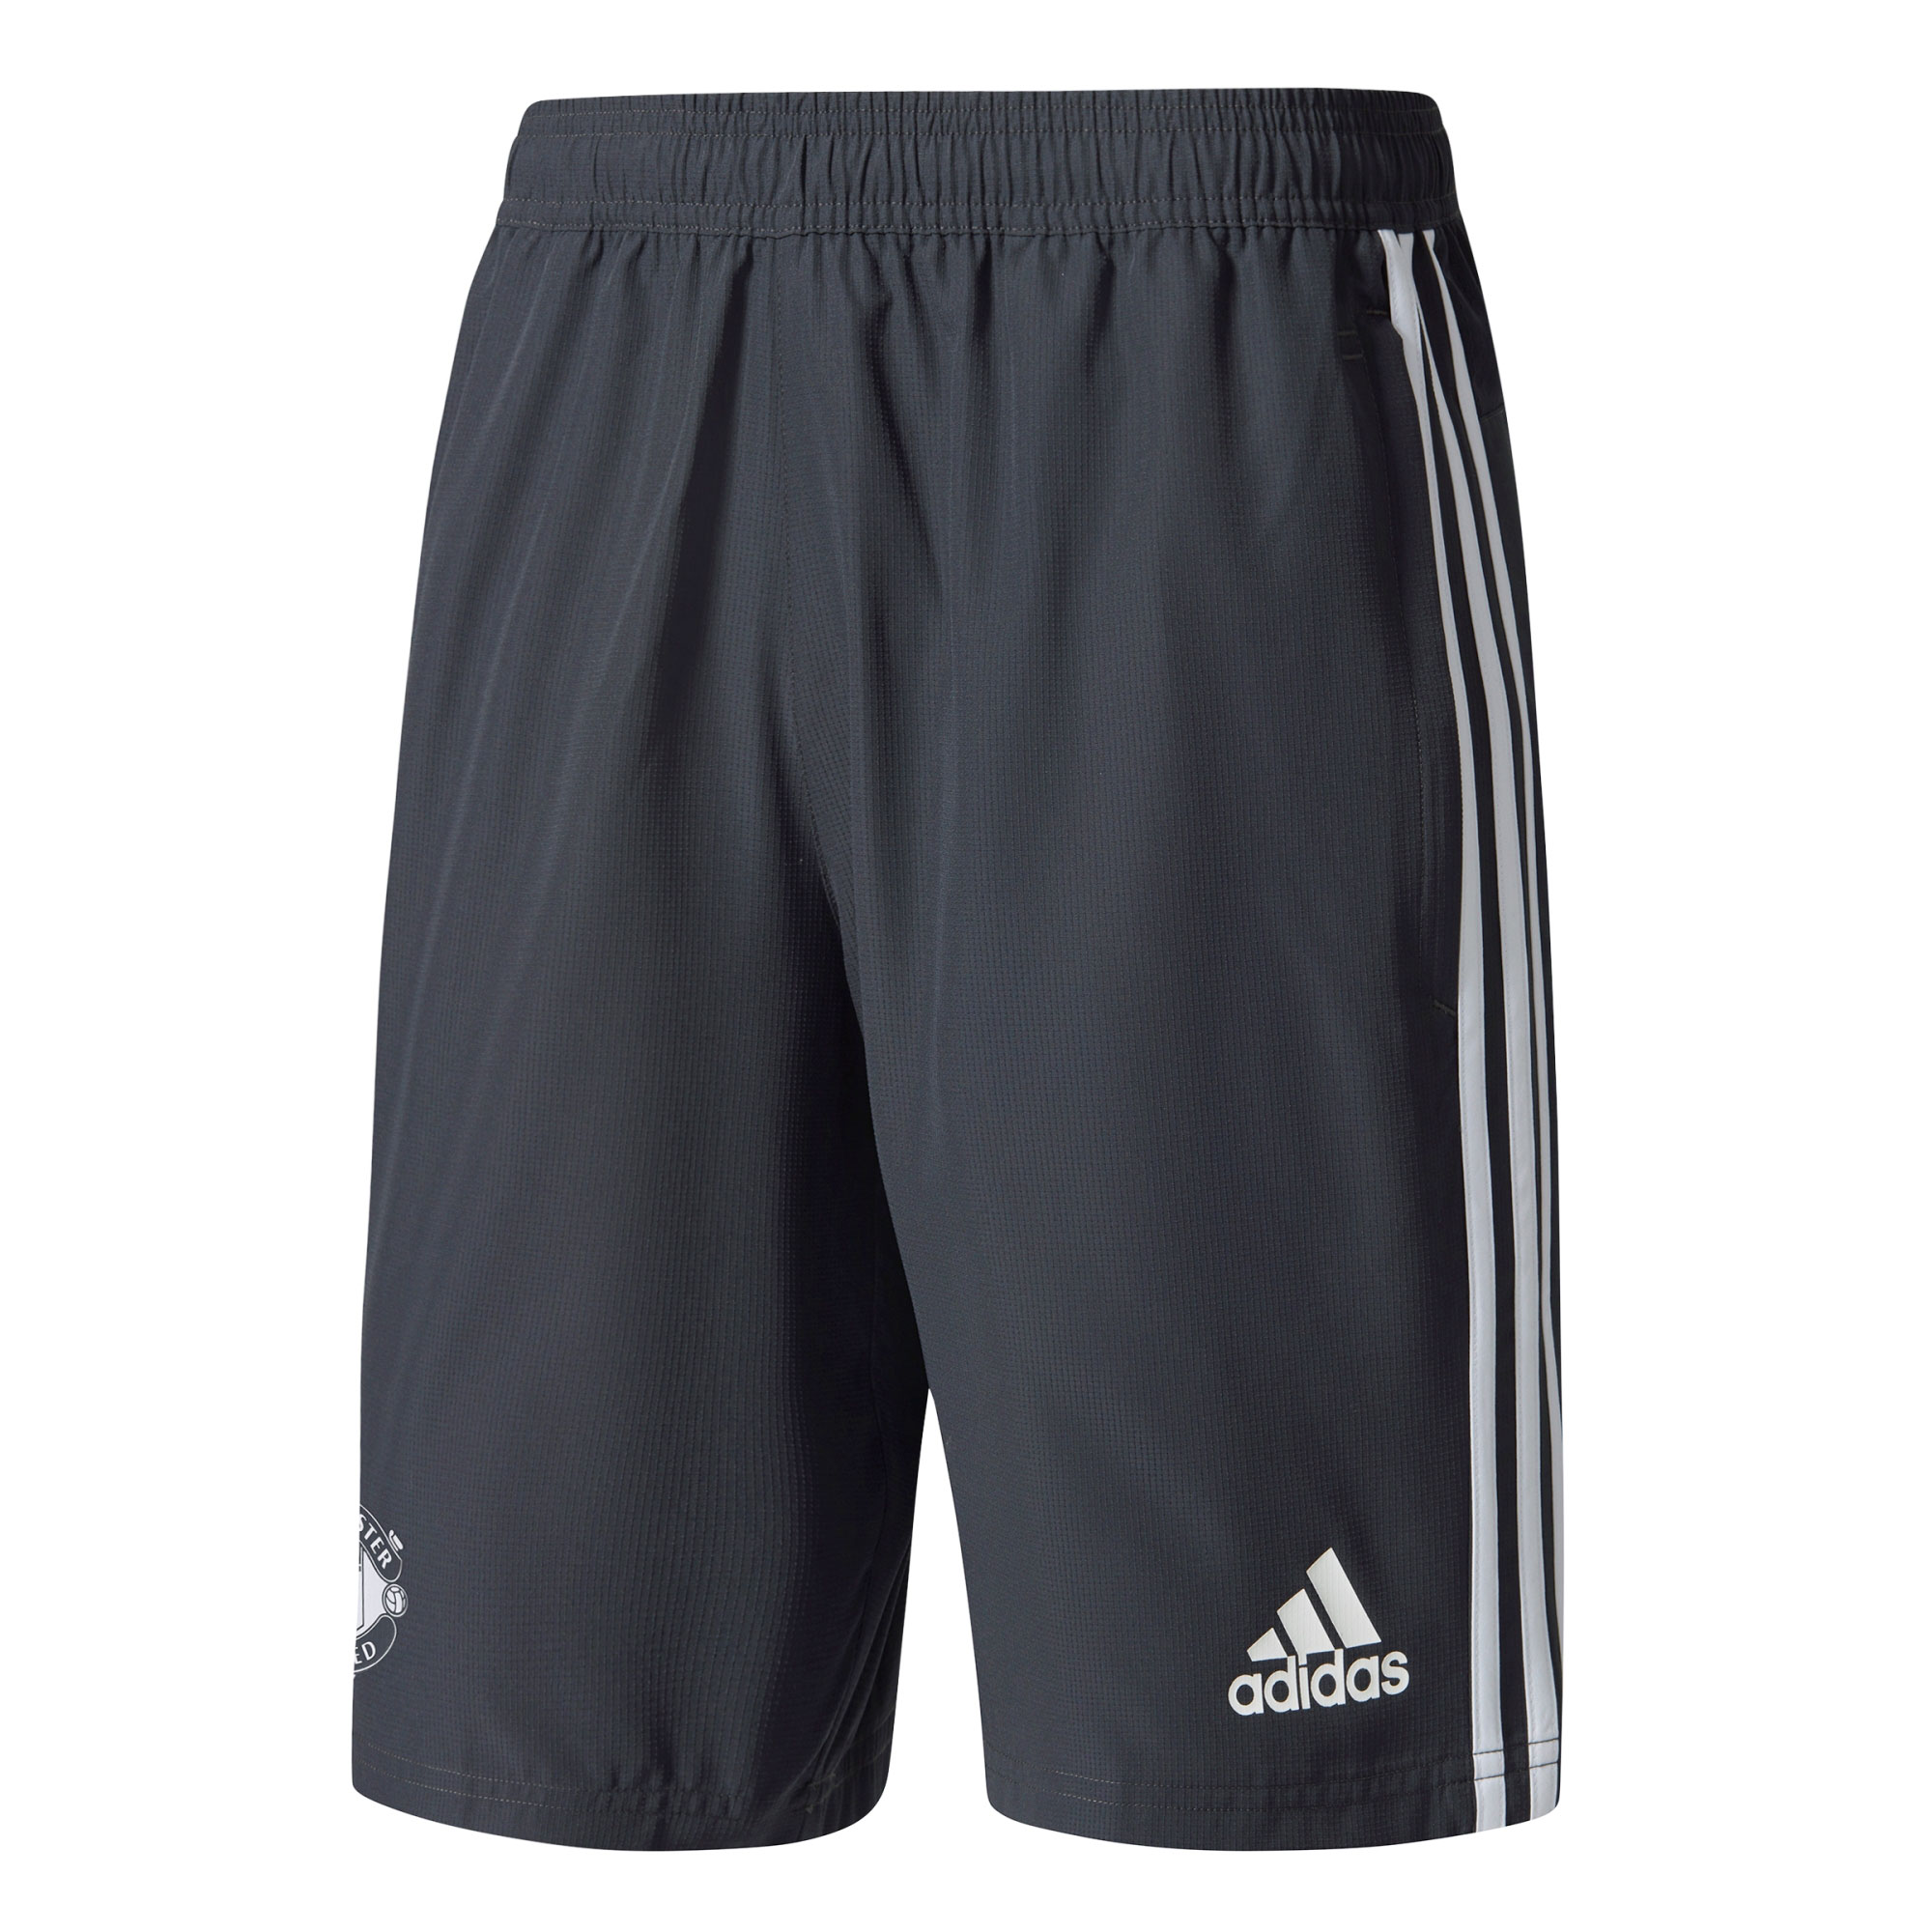 Manchester United Training Woven Short - Dark Grey